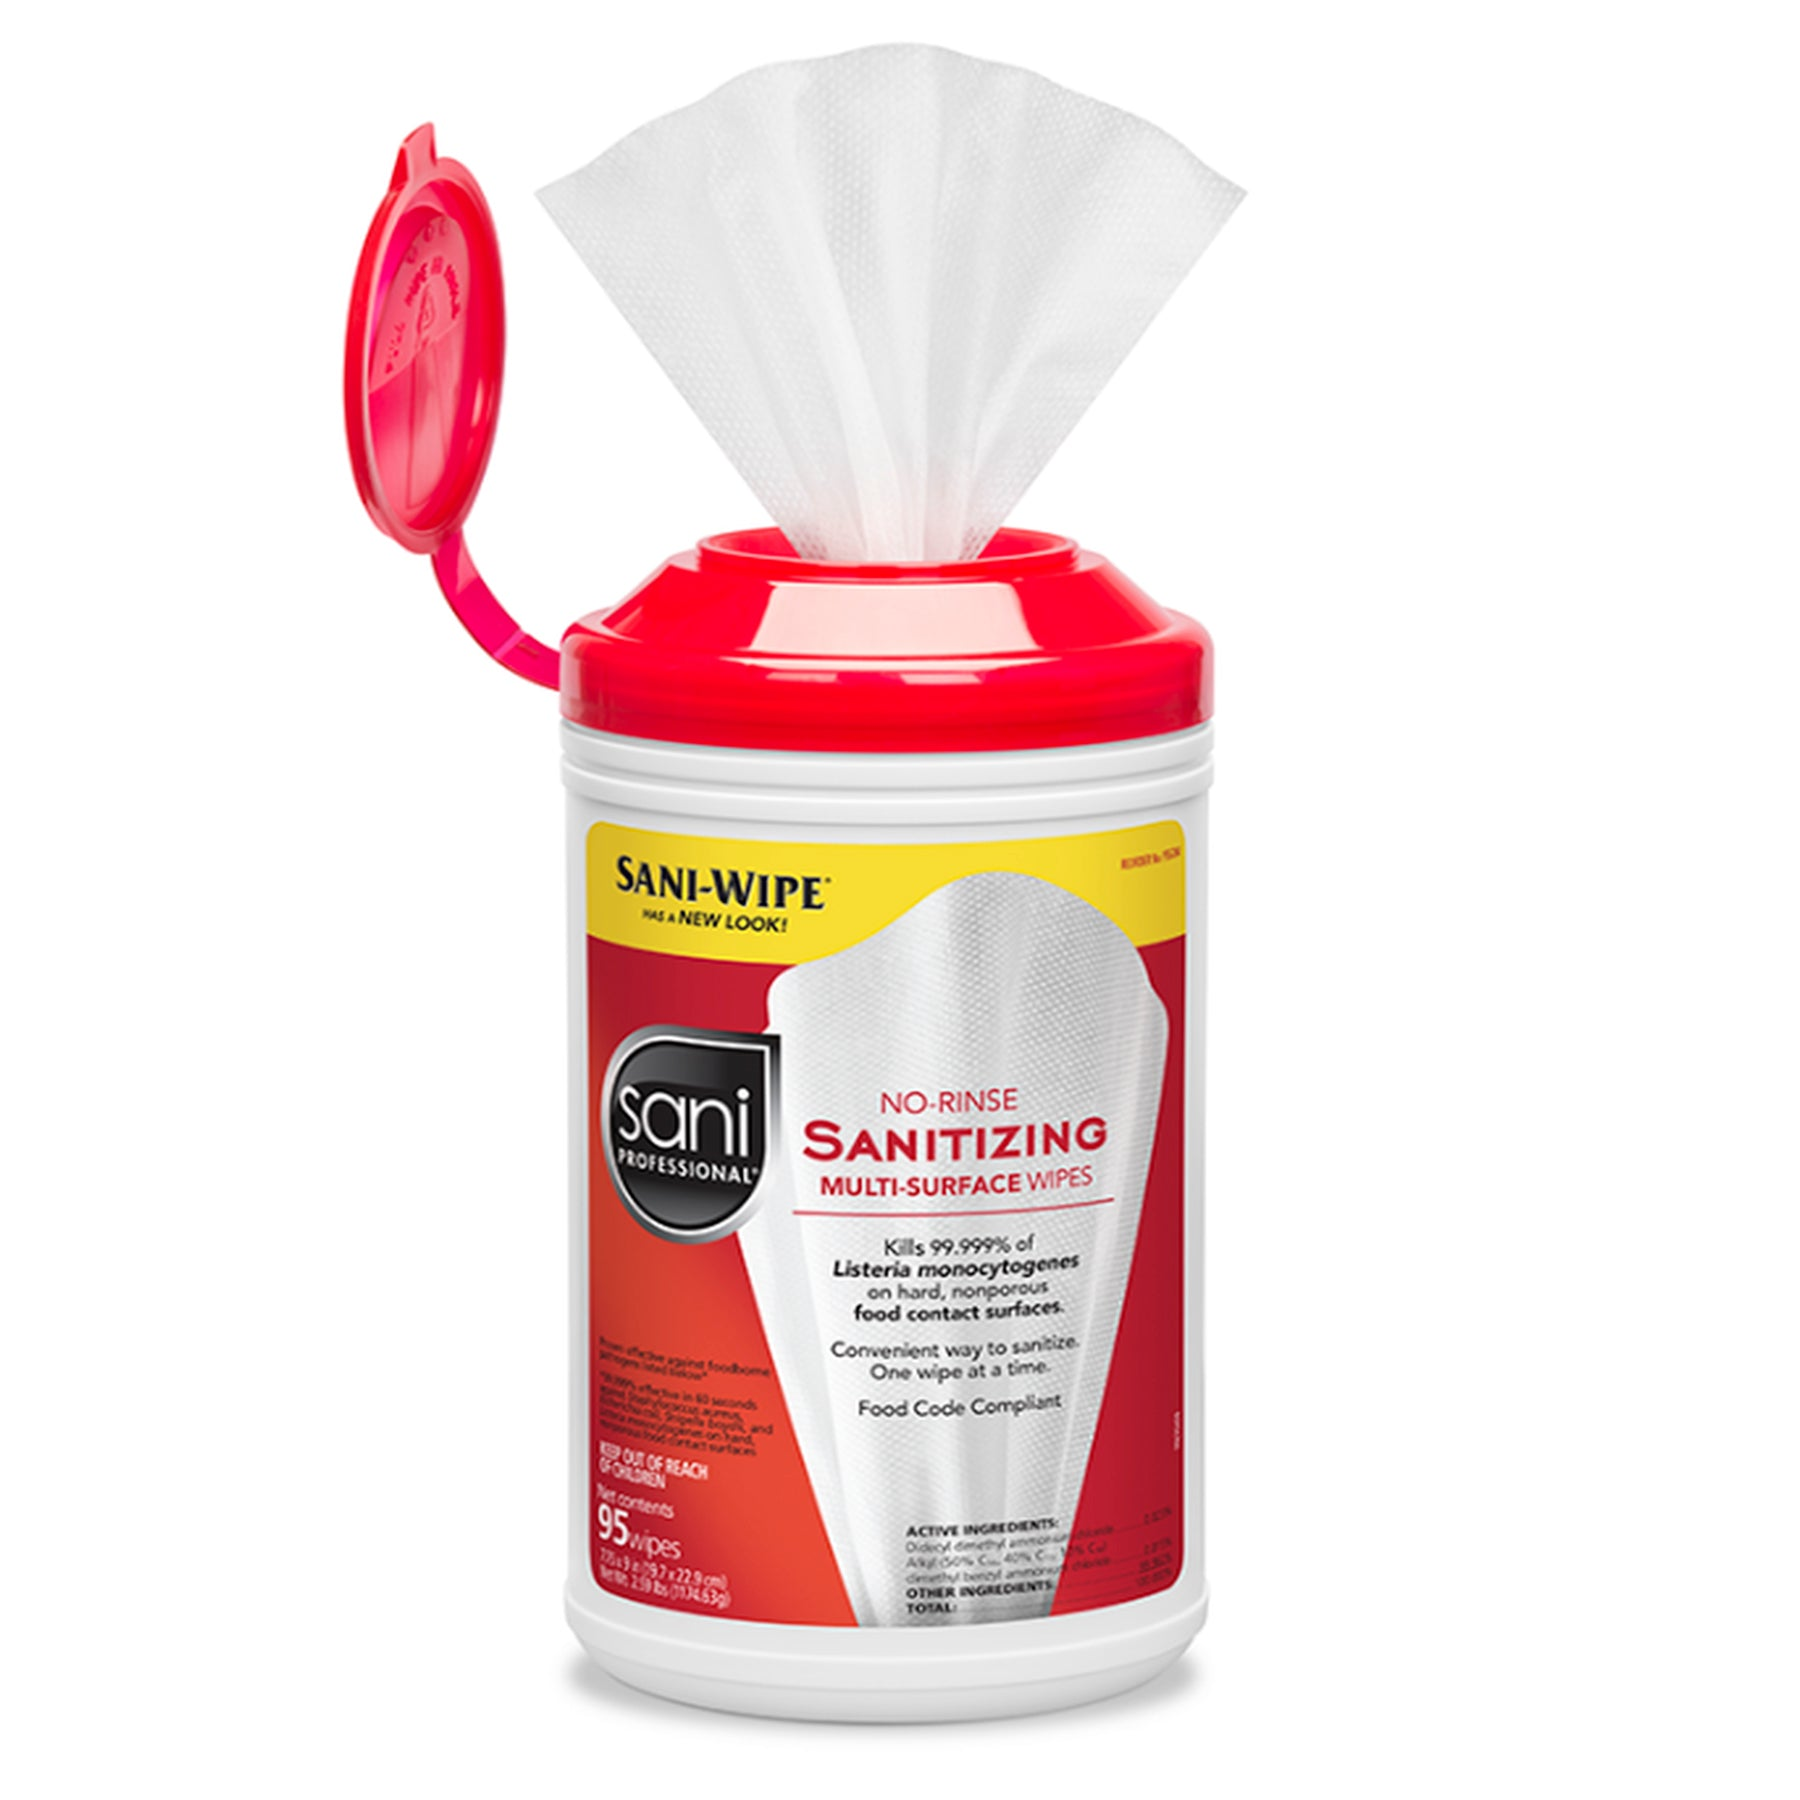 No-Rinse Sanitizing Multi-Surface Wipes By Sani Professional No-Rinse Sanitizing Multi-Surface Wipes By Sani Professional 95 wipes